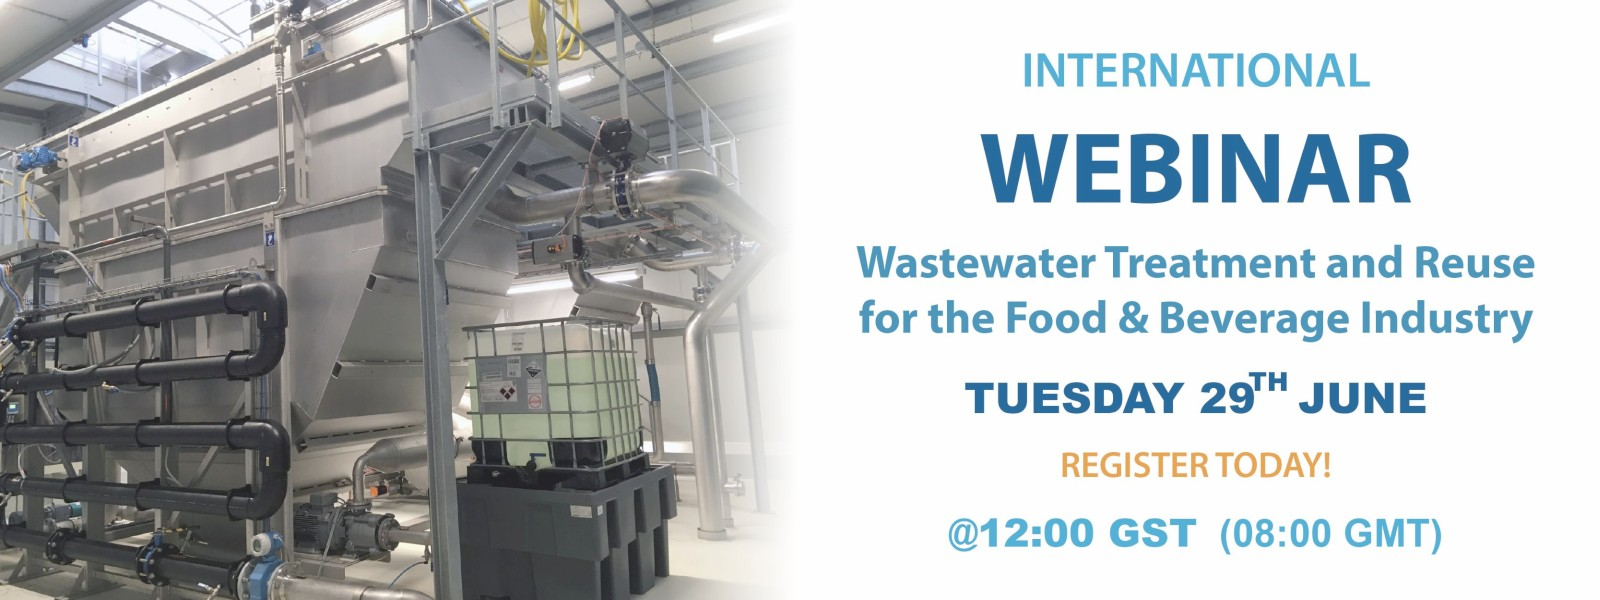 Wastewater Treatment and Reuse for the Food & Beverage Industry